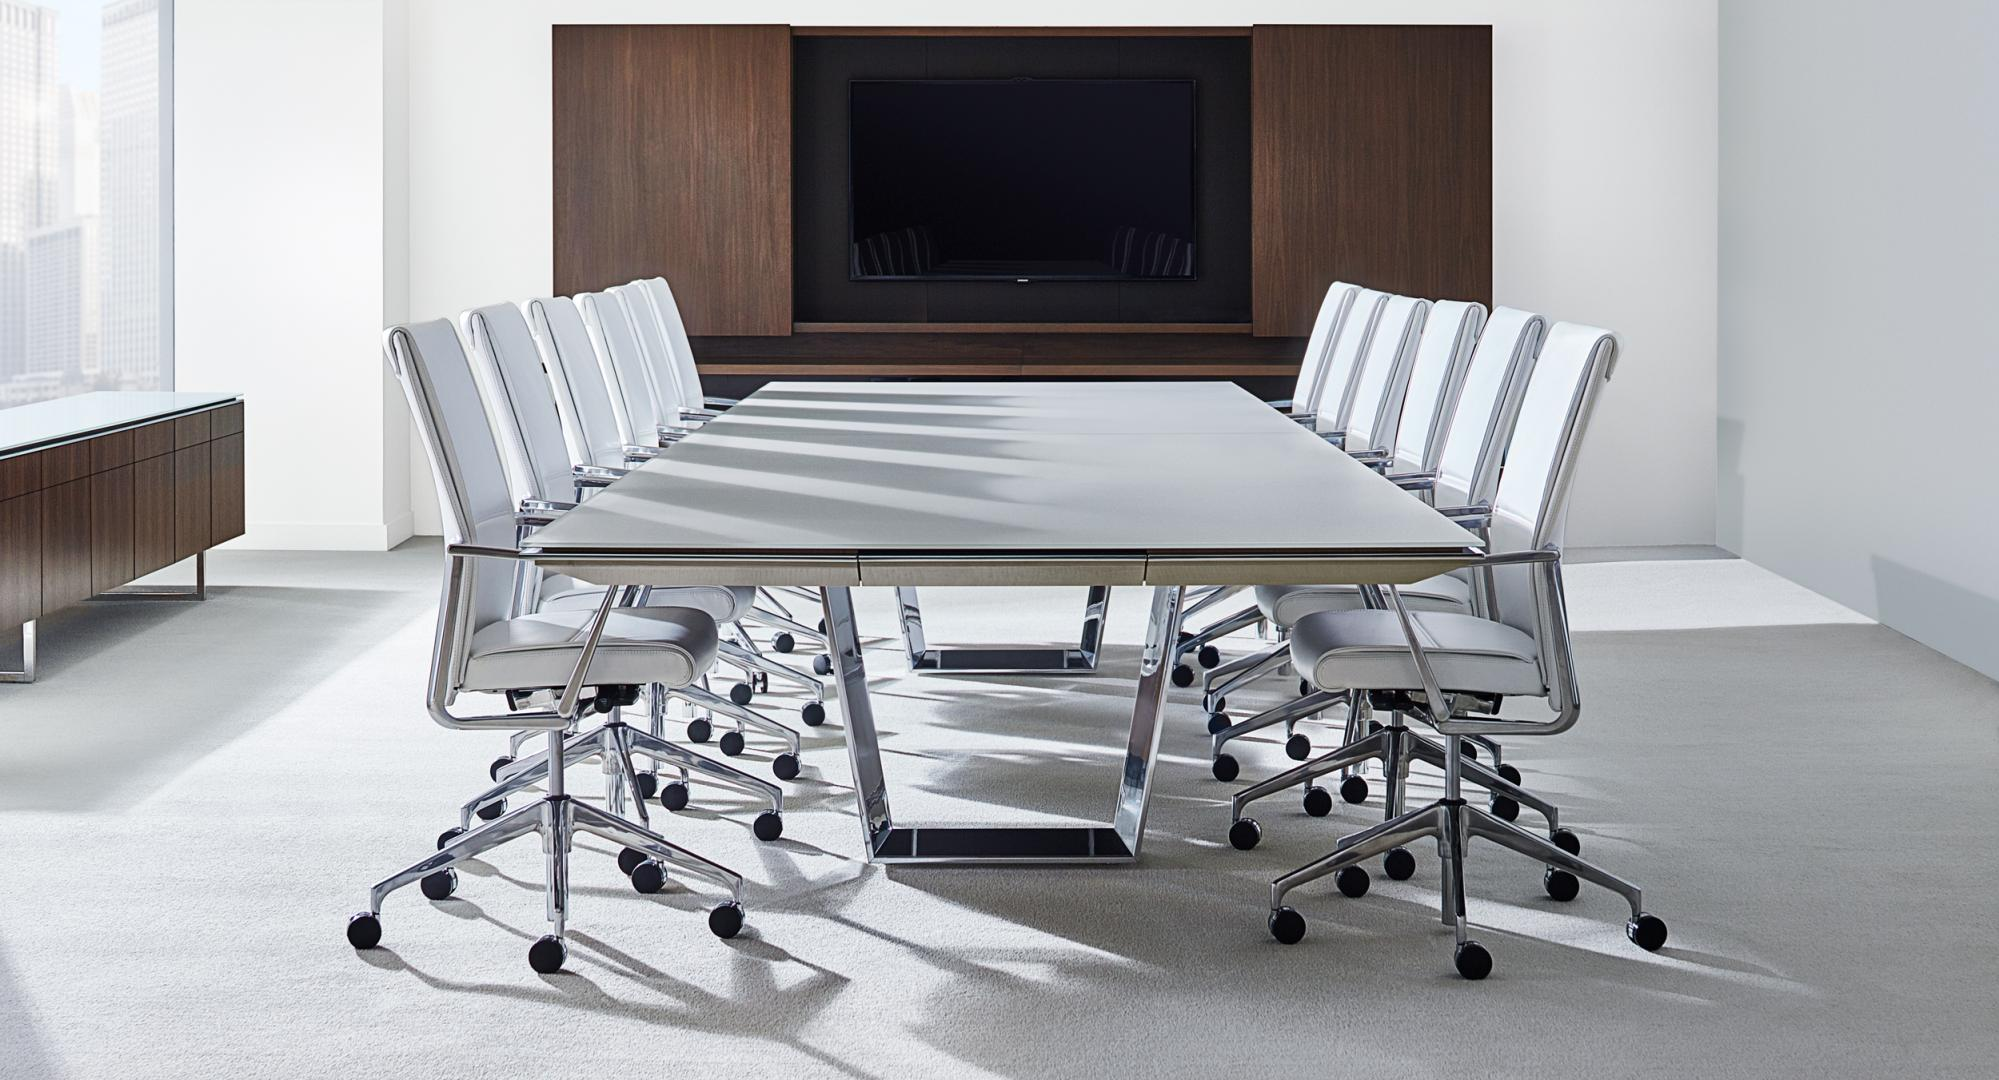 The Halcon Mesa meeting room table incorporates perimeter power technology and award-winning design with a variety of options.